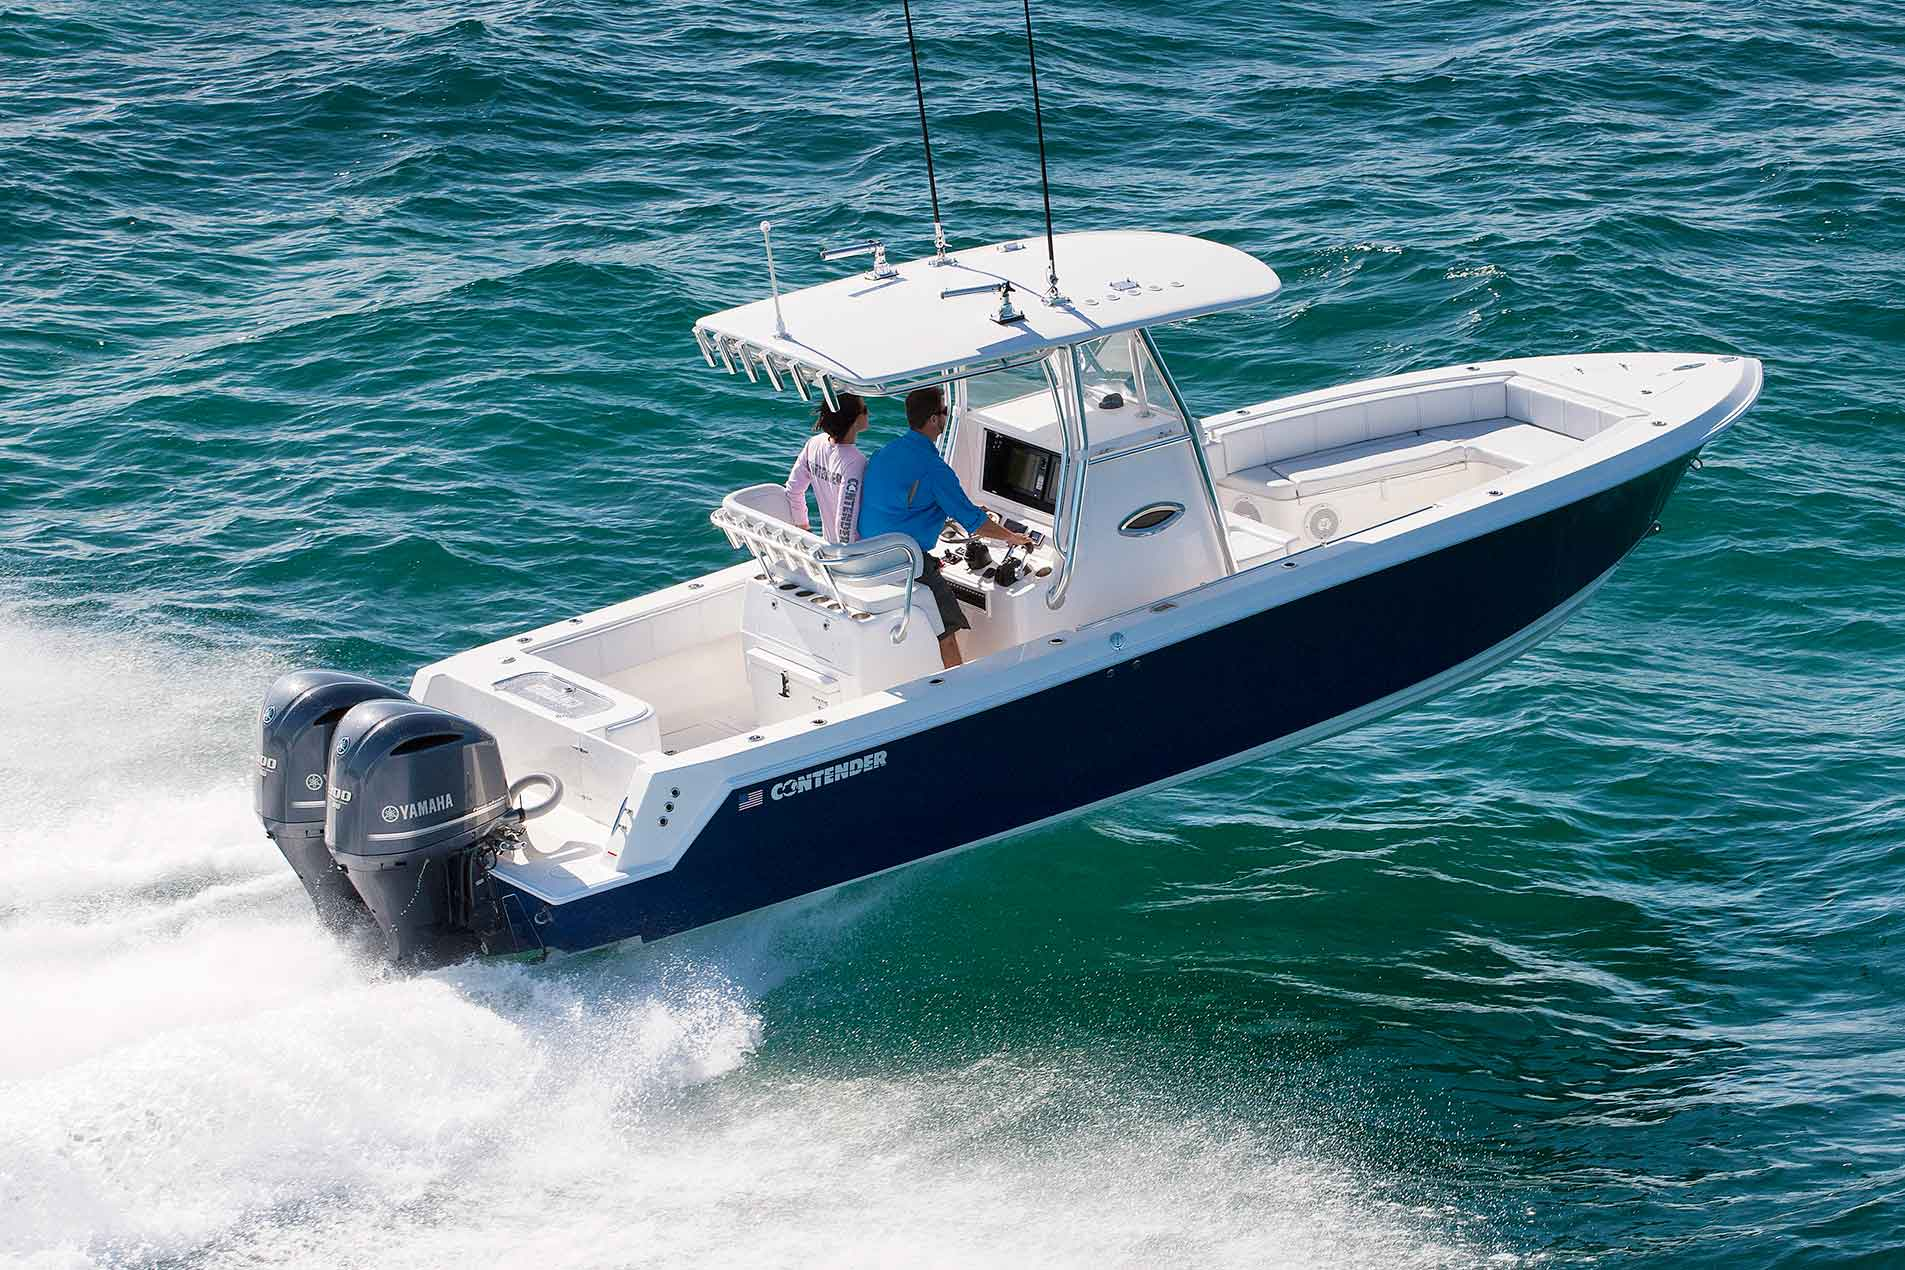 Sport series boats contender offshore fishing boats for Offshore fishing boats